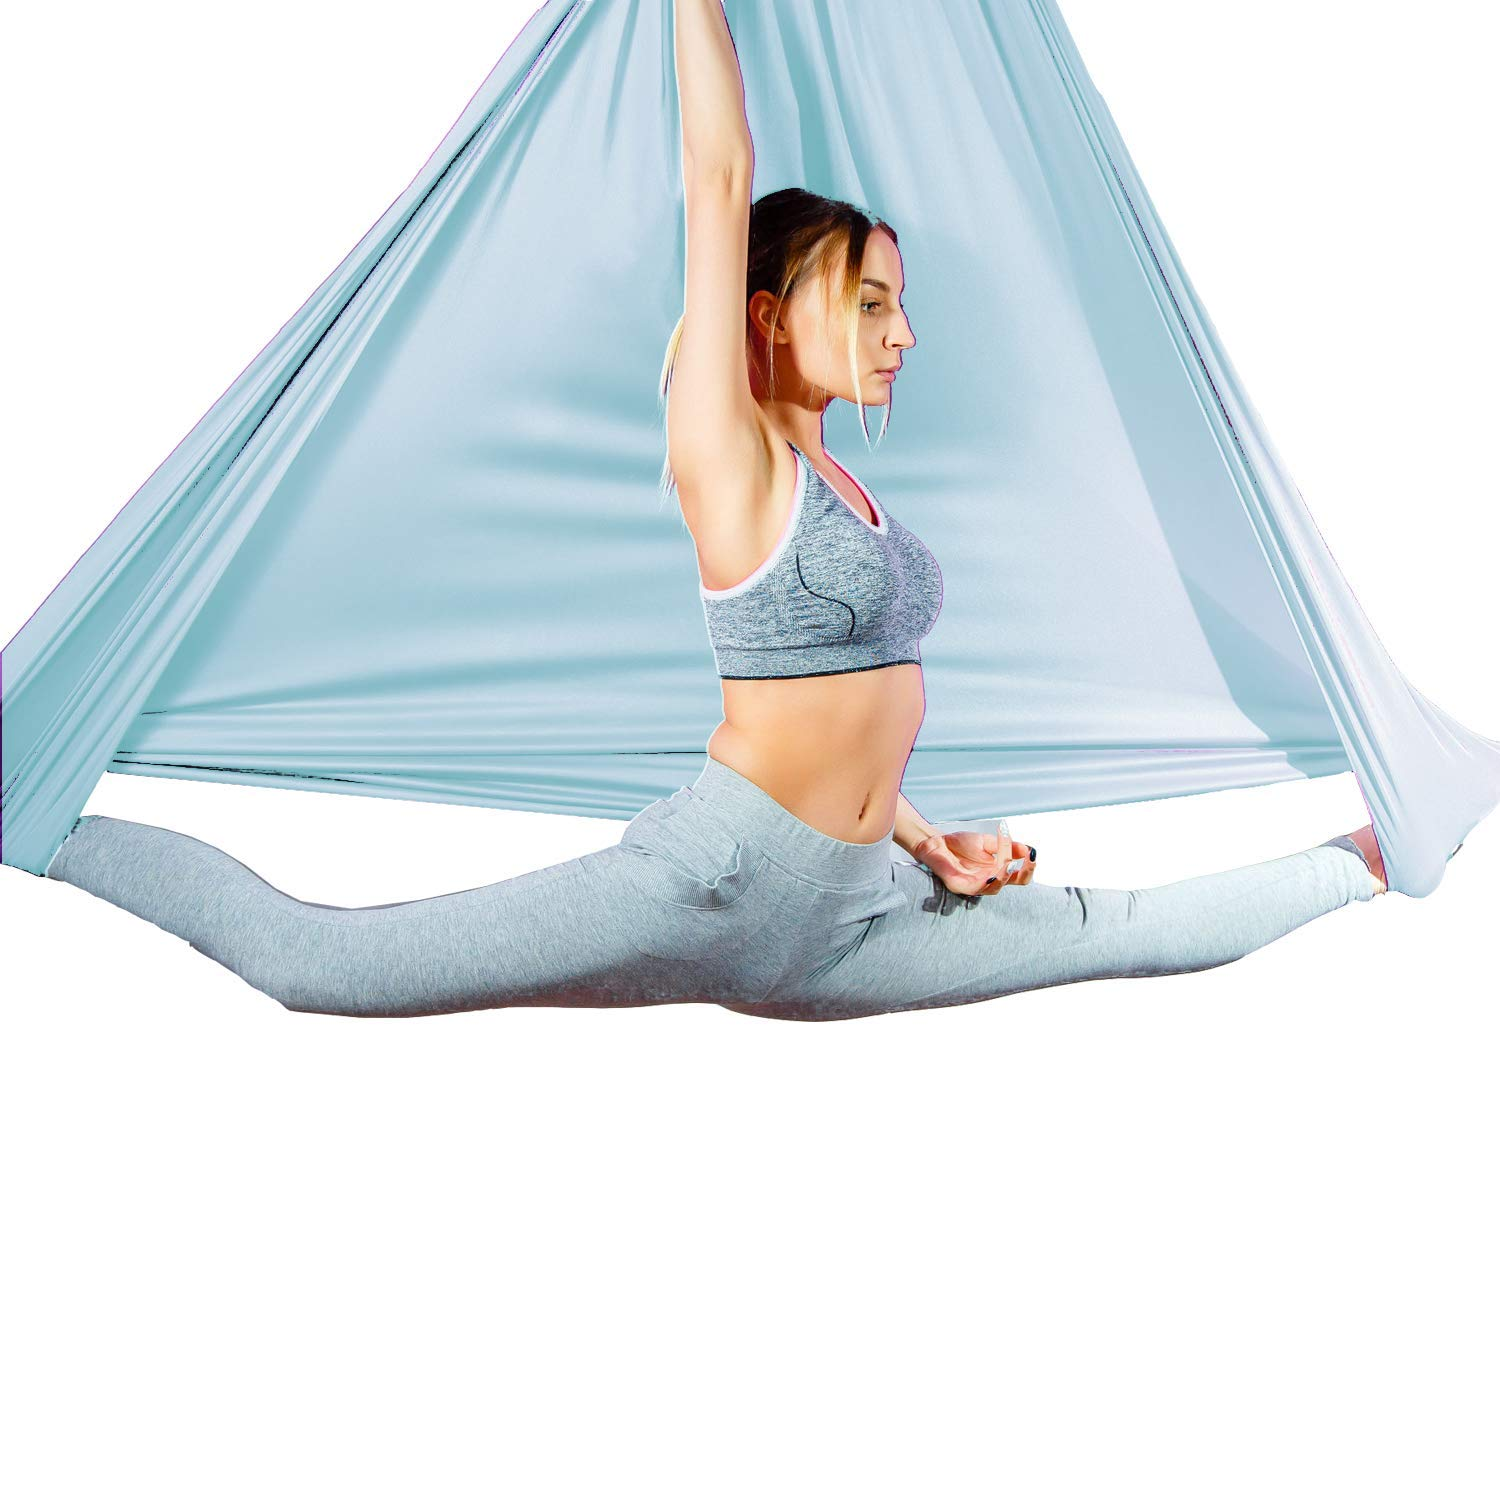 Aum Active Aerial Silks Fabric 4.5×3 Yards, for Aerial Yoga Hammock, Antigravity Yoga Trapeze, Inversion Pilates, Sensory Swing – for Ceiling Height Upto 10ft